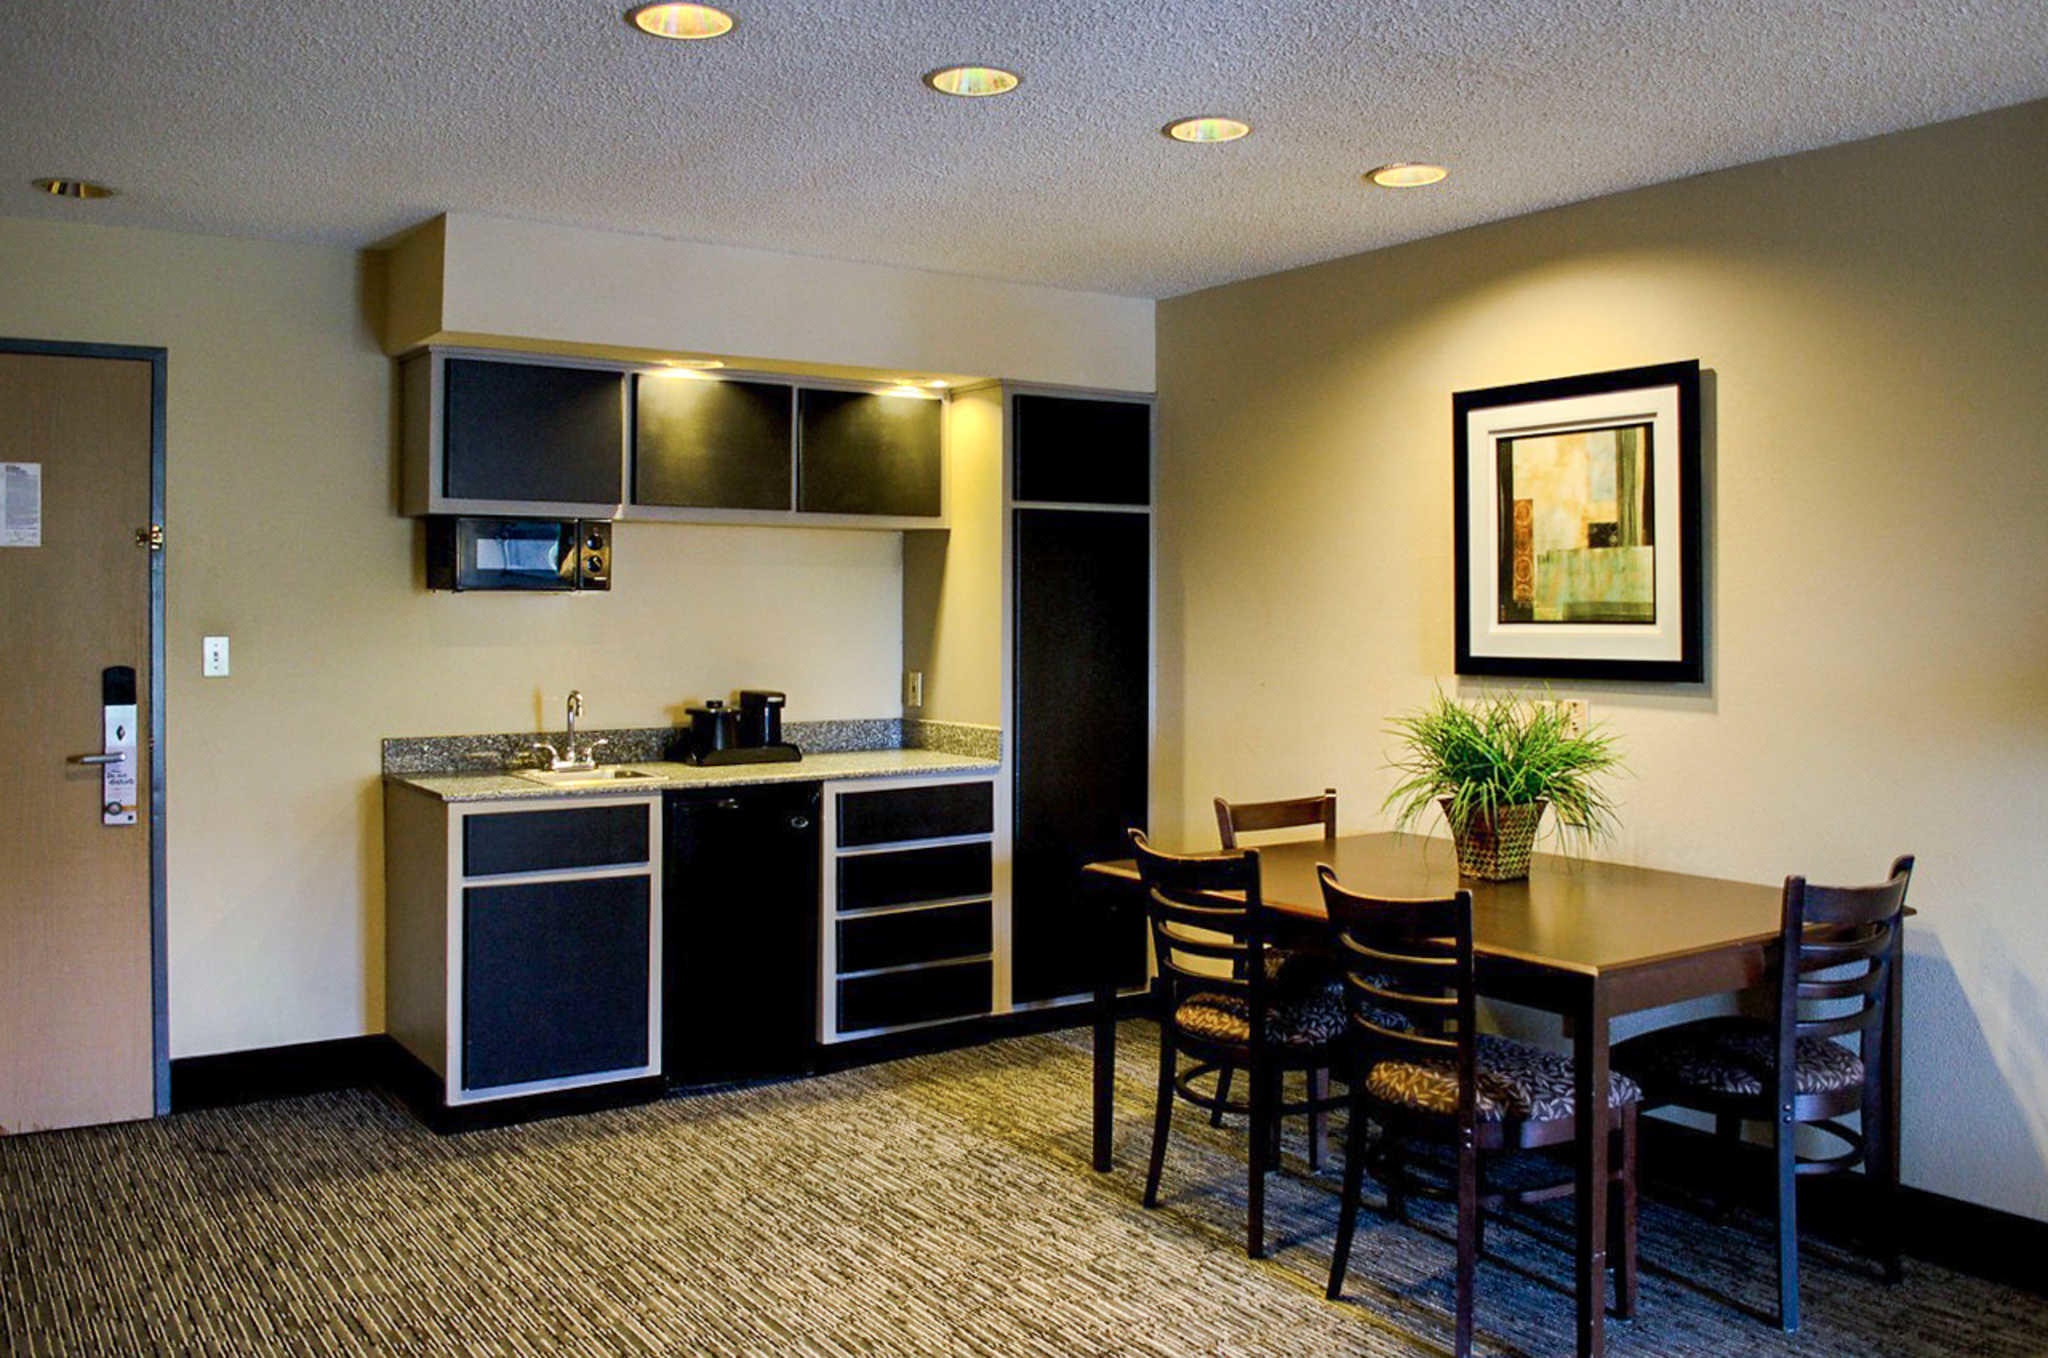 Quality Inn & Suites at Airport Blvd I-65 image 5